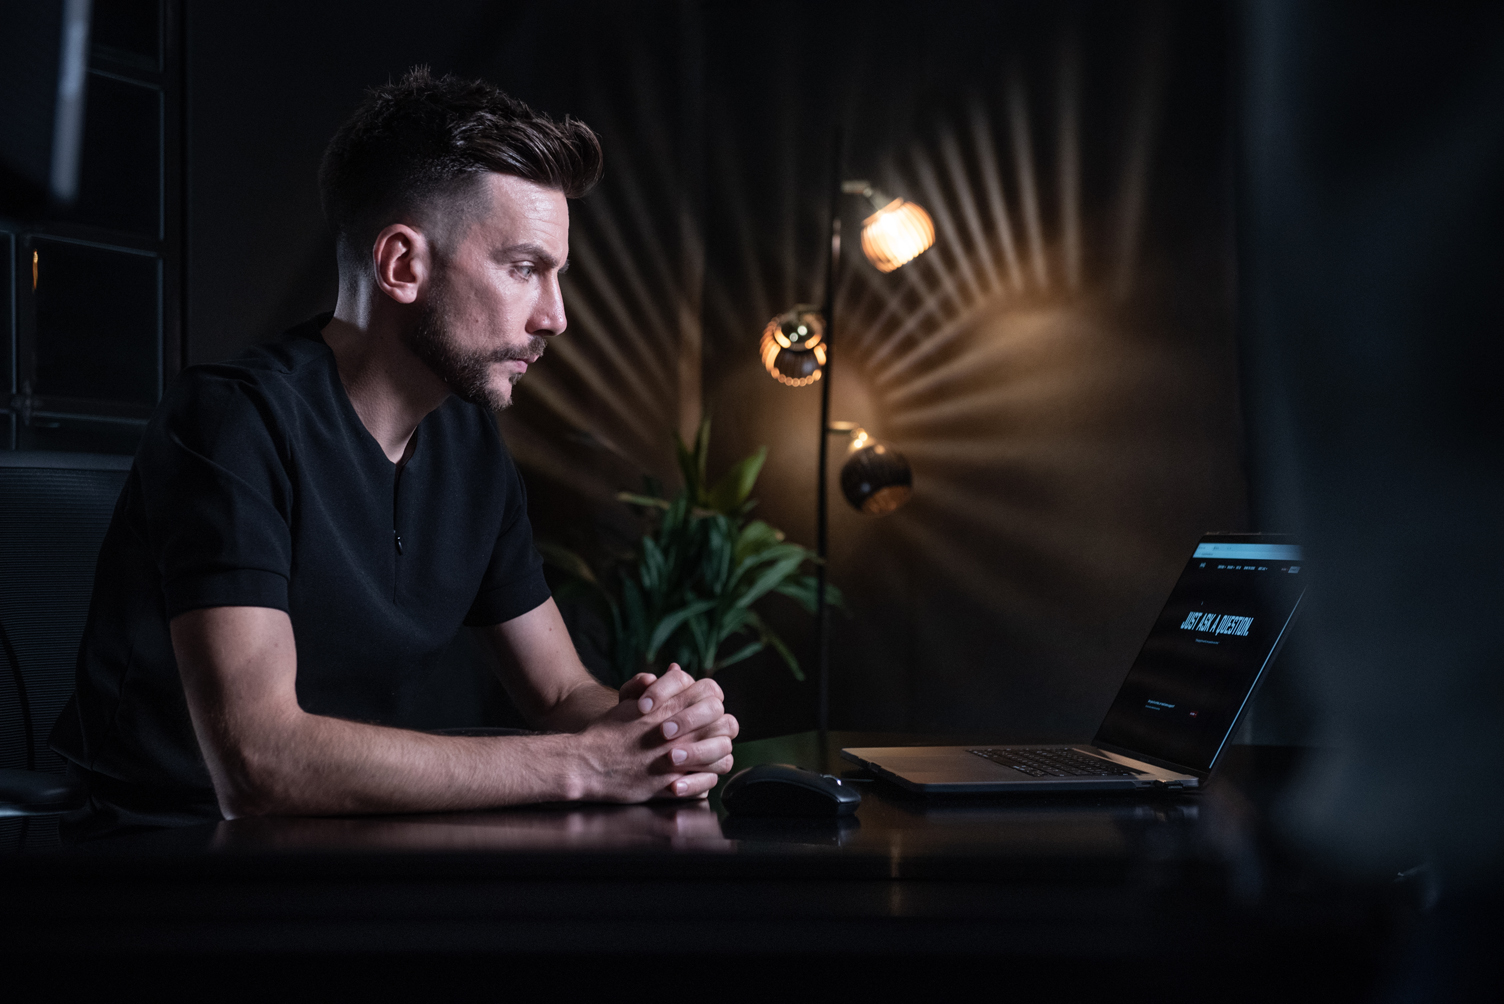 War Paint for Men founder launches JAAQ –an online platform offering advice from leading mental health experts